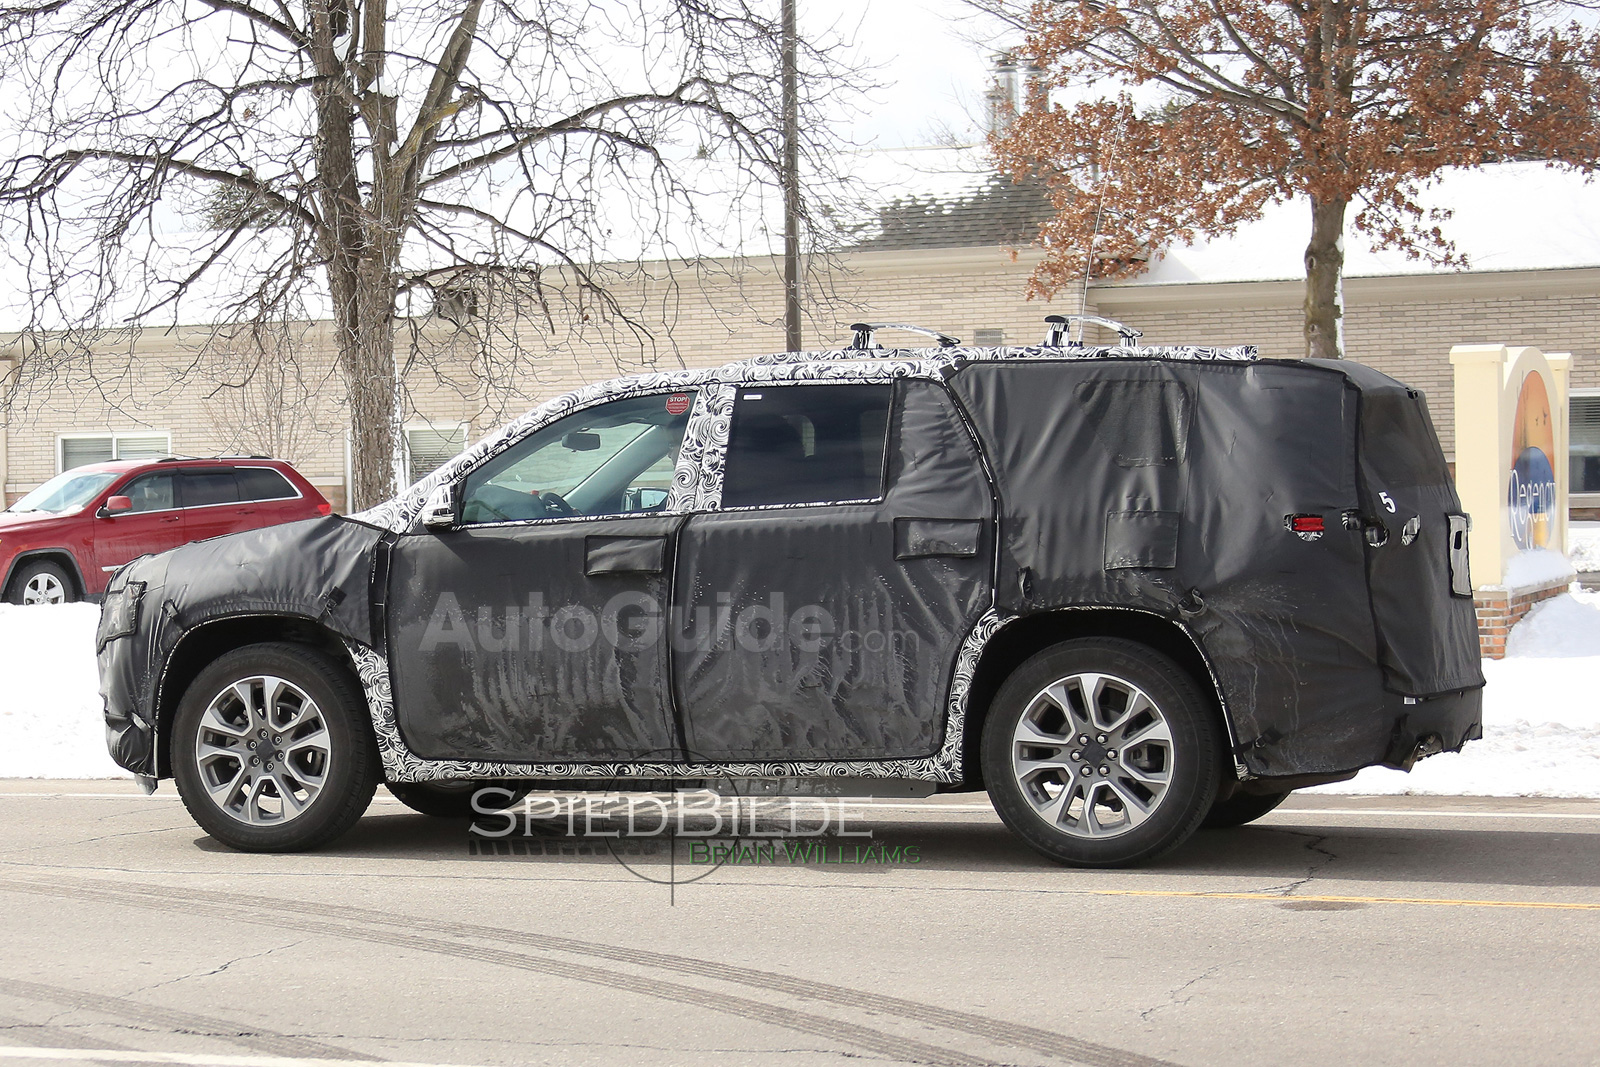 2018 Cadillac Xt7 Or 2017 Chevy Traverse Spied Testing For The First